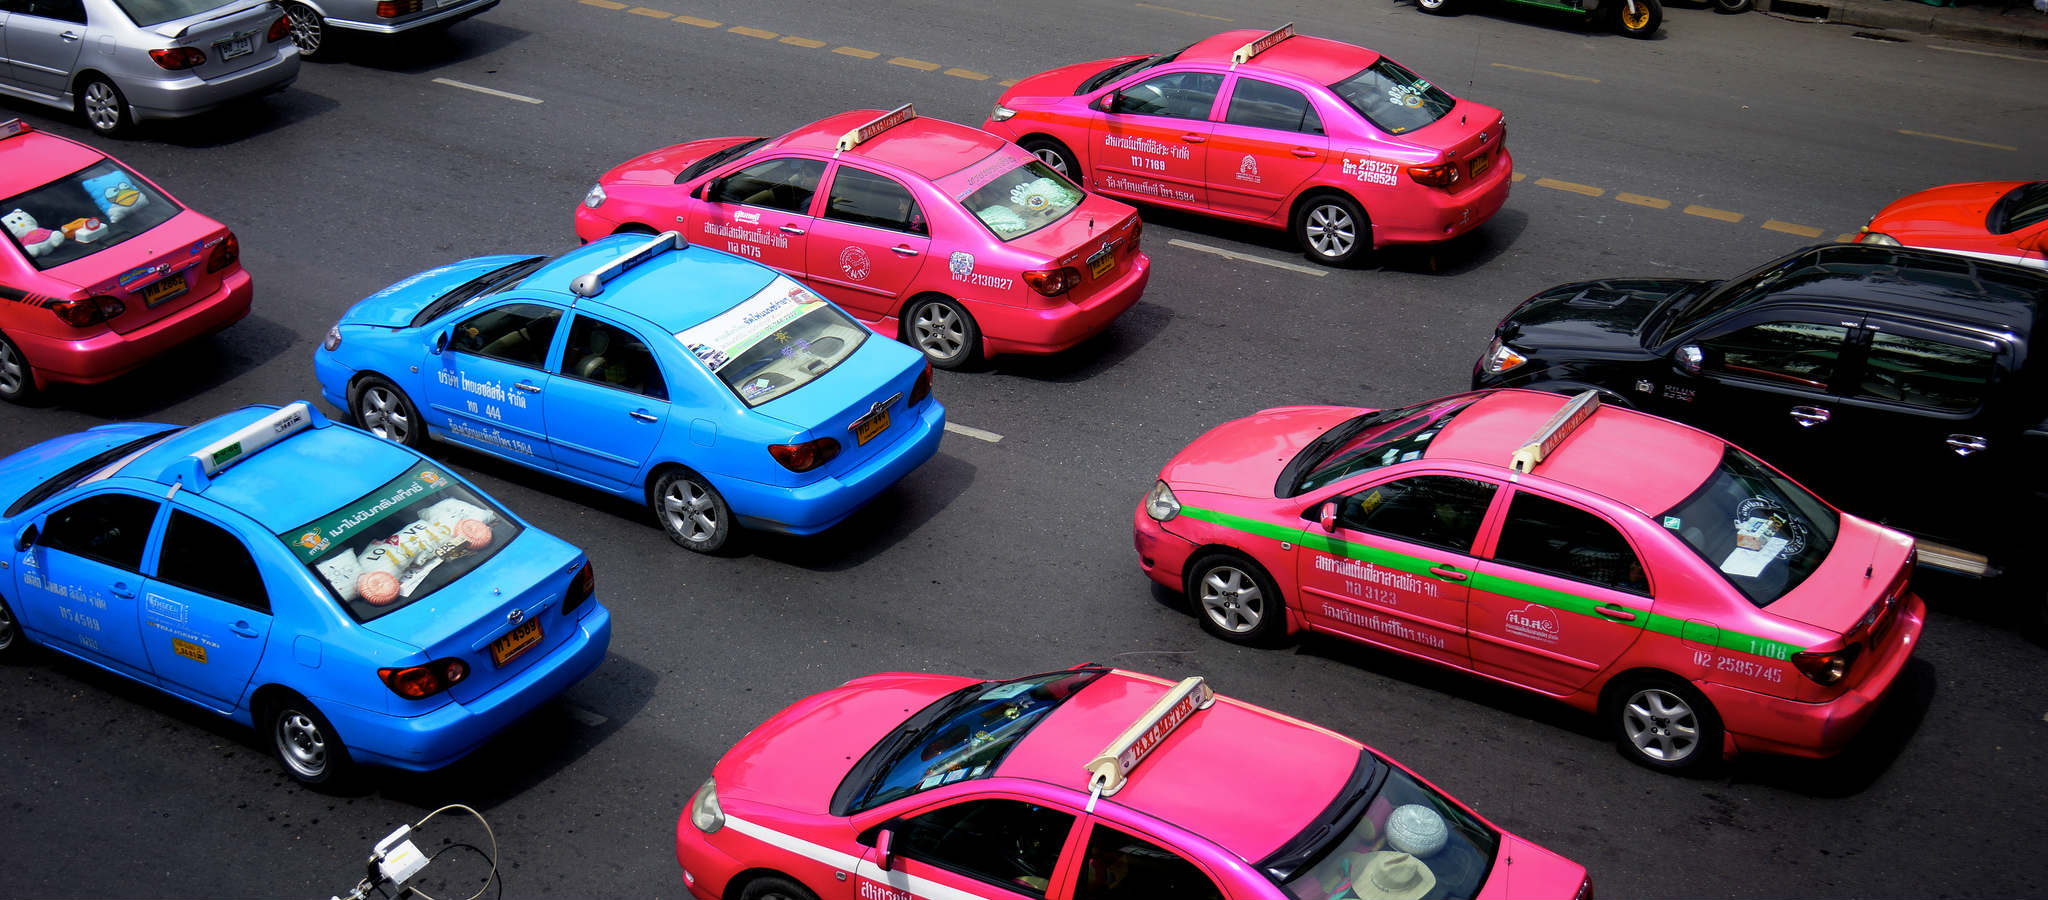 Pink and blue taxis in Bangkok